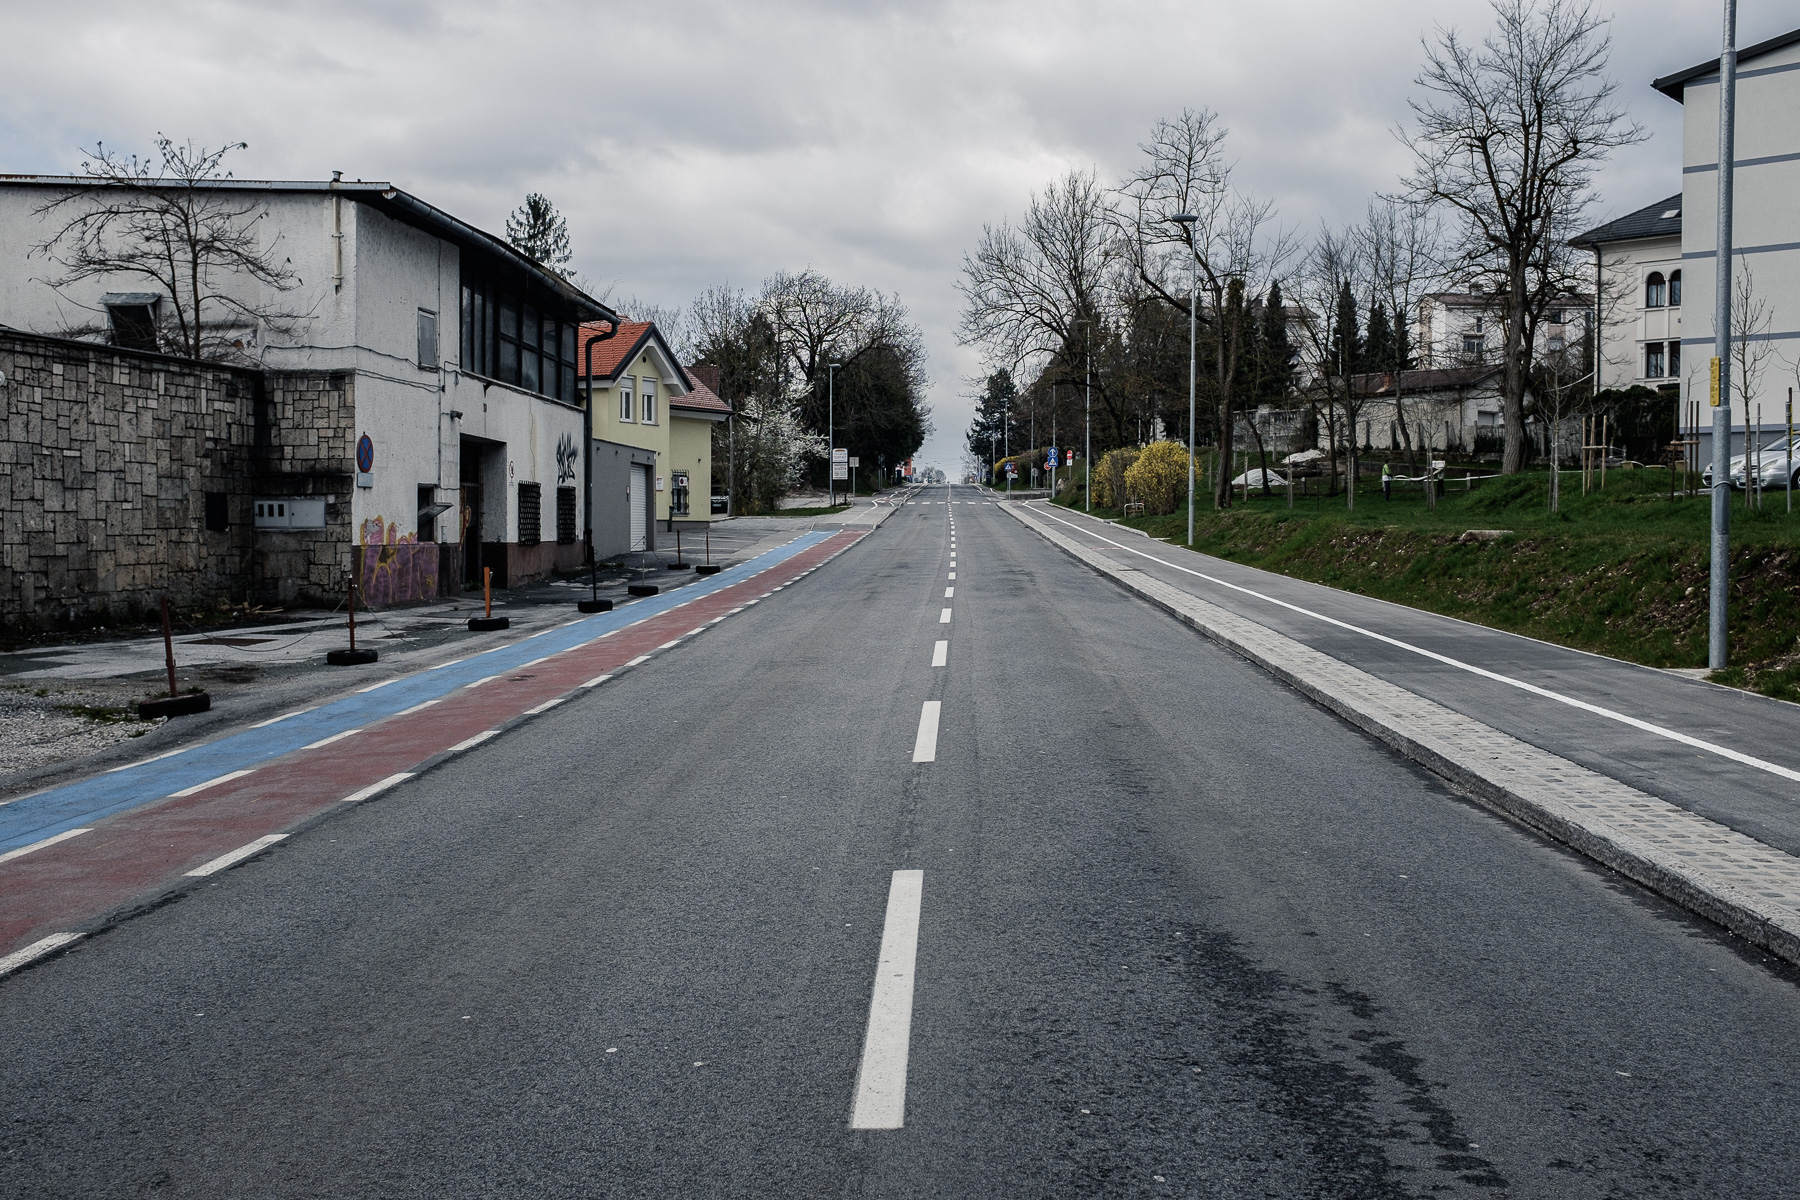 An empty road and sidewalks in the town of Kranj, Slovenia, during the coronavirus outbreak nationwide lockdown on March 22, 2020.